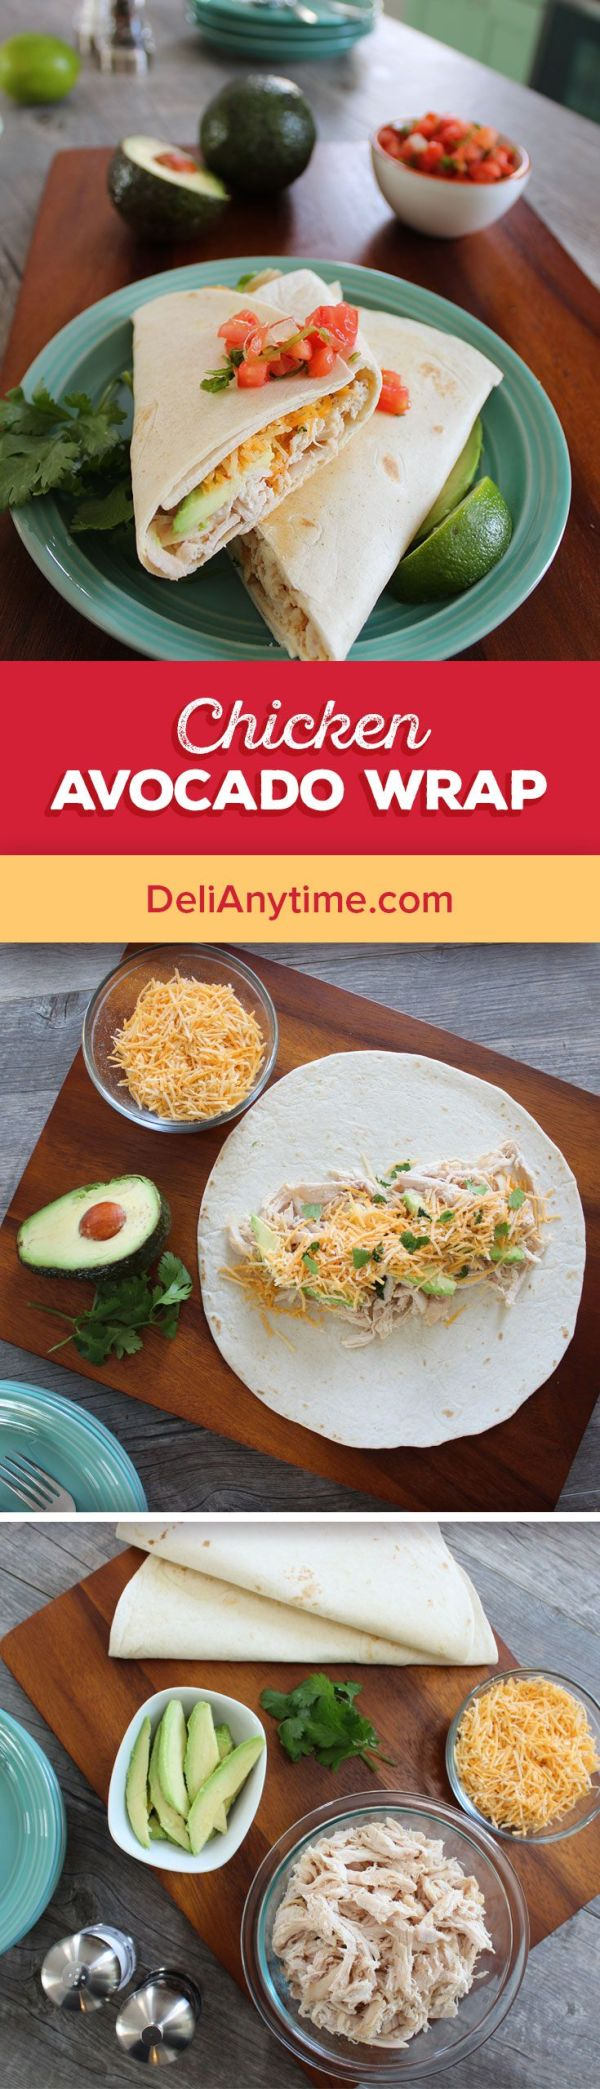 1000+ ideas about Husband Lunch on Pinterest | Bagel ...